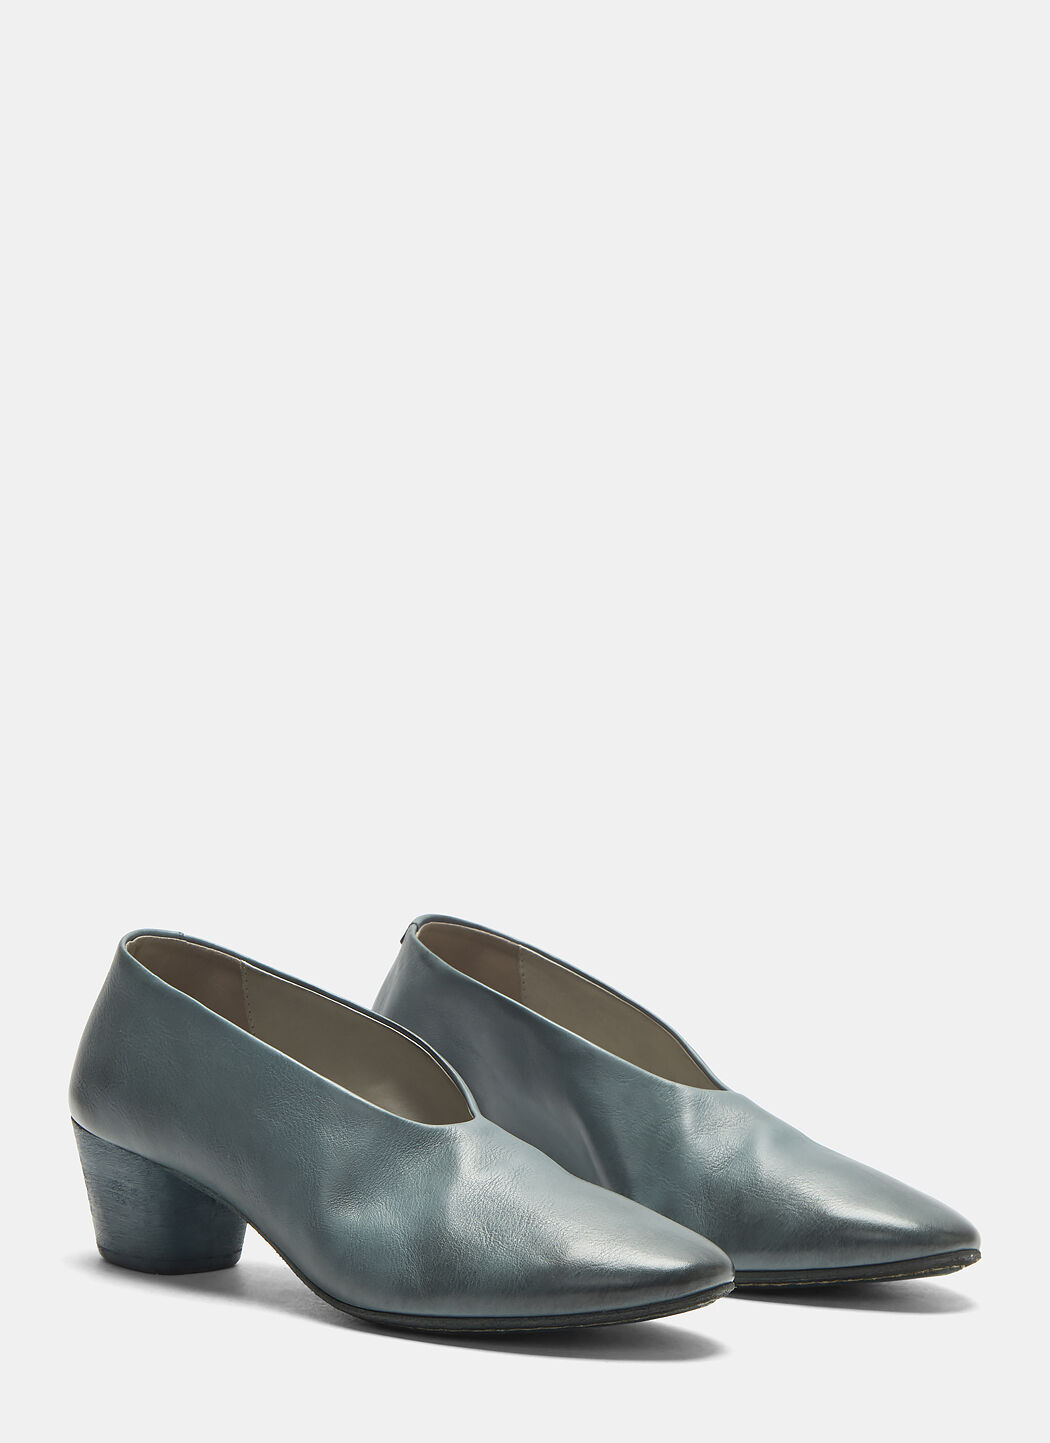 MARSèLL Coltello Vit Fiore Heeled Pumps